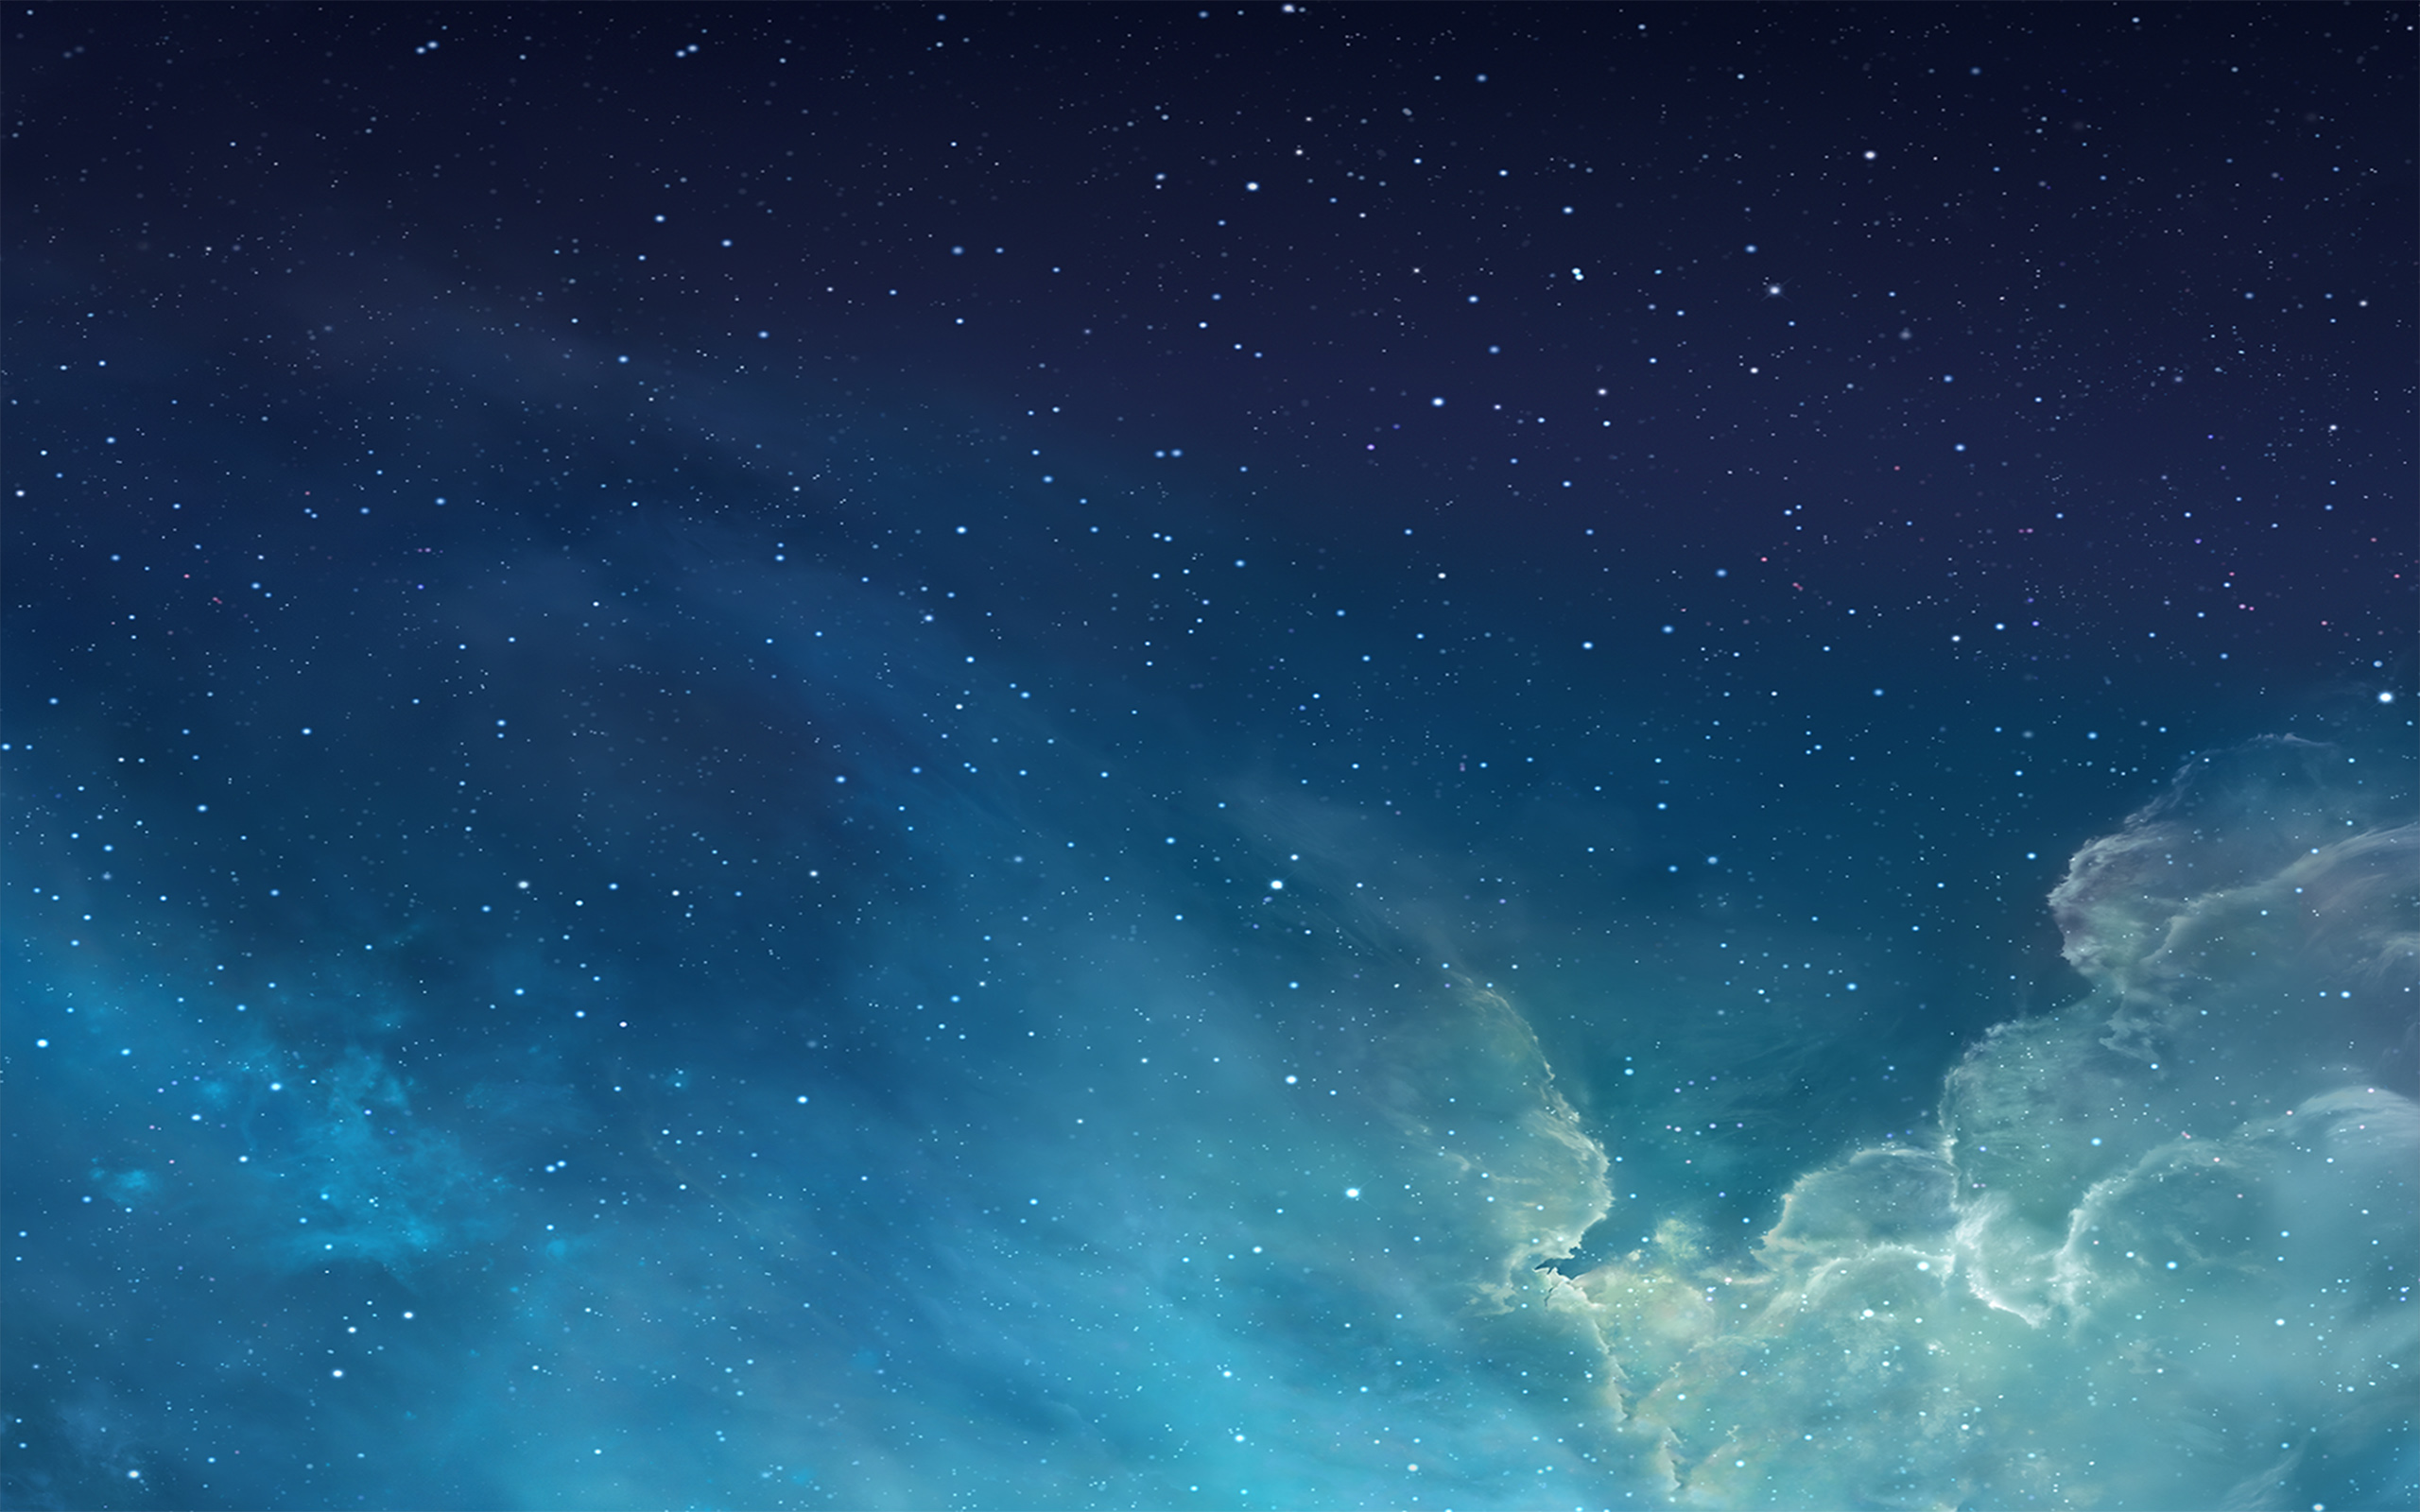 IOS7 Wallpaper